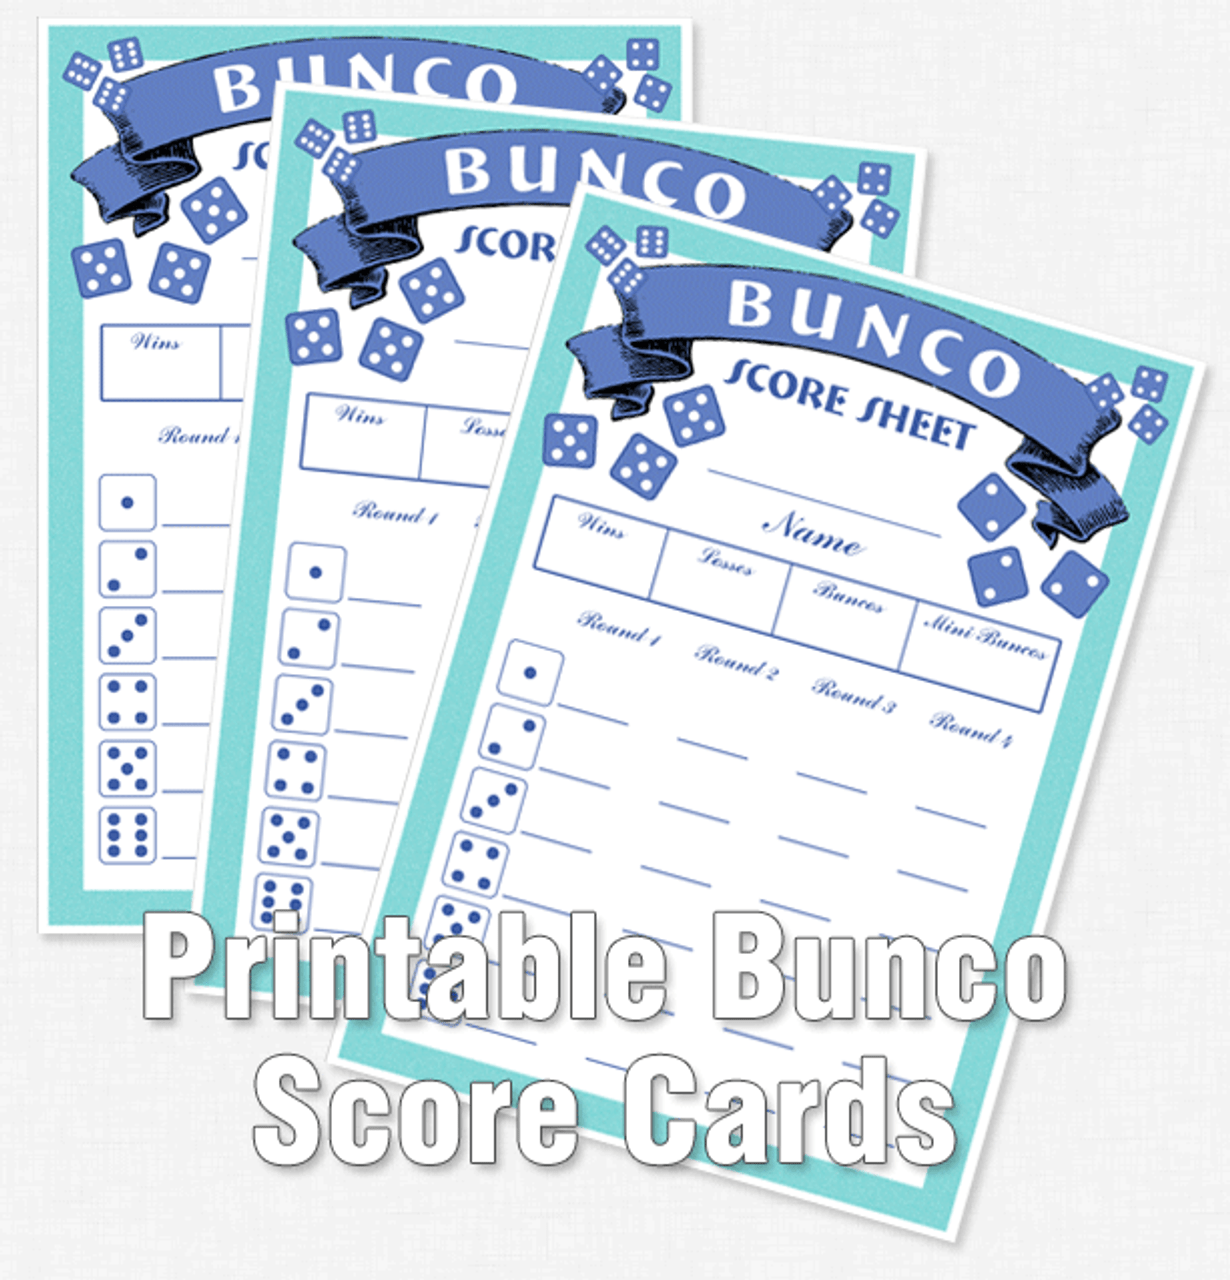 photograph about Printable Bunco Sheets identified as Printable Bunco Ranking Playing cards